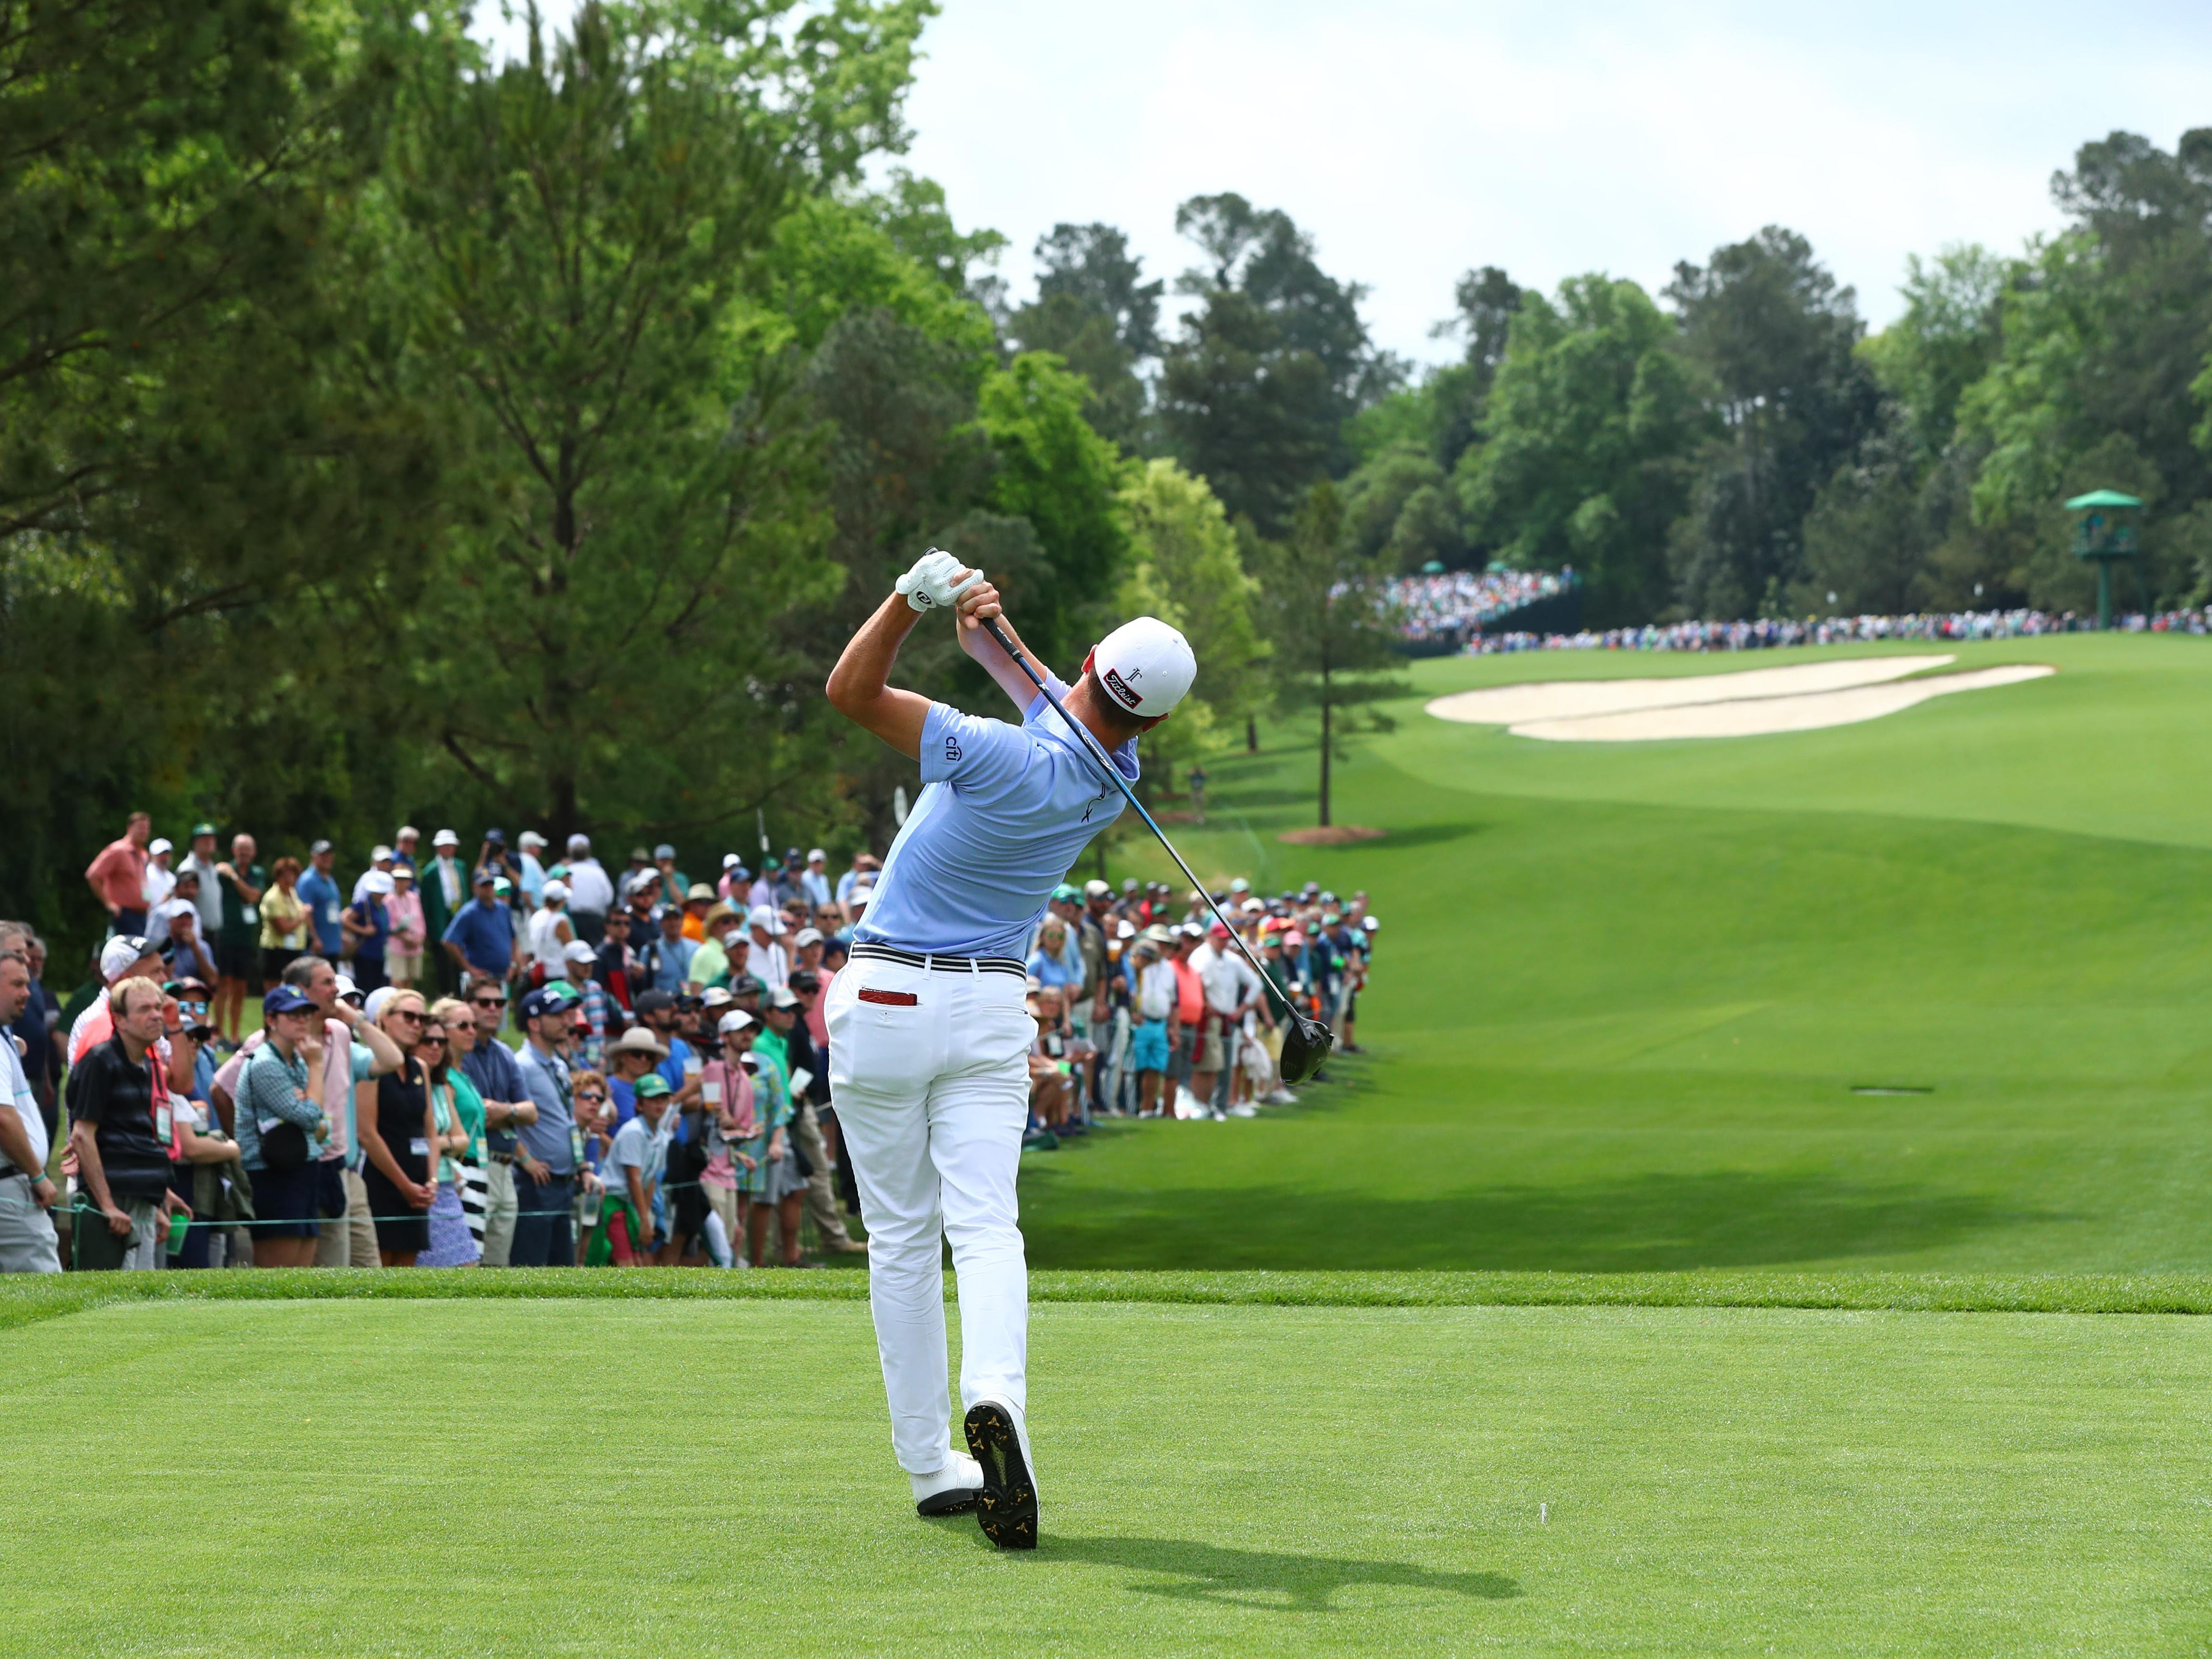 Apr 12, 2019; Augusta, GA, USA; Justin Thomas hits his tee shot on the 5th hole during the second round of The Masters golf tournament at Augusta National Golf Club. Mandatory Credit: Rob Schumacher-USA TODAY Sports